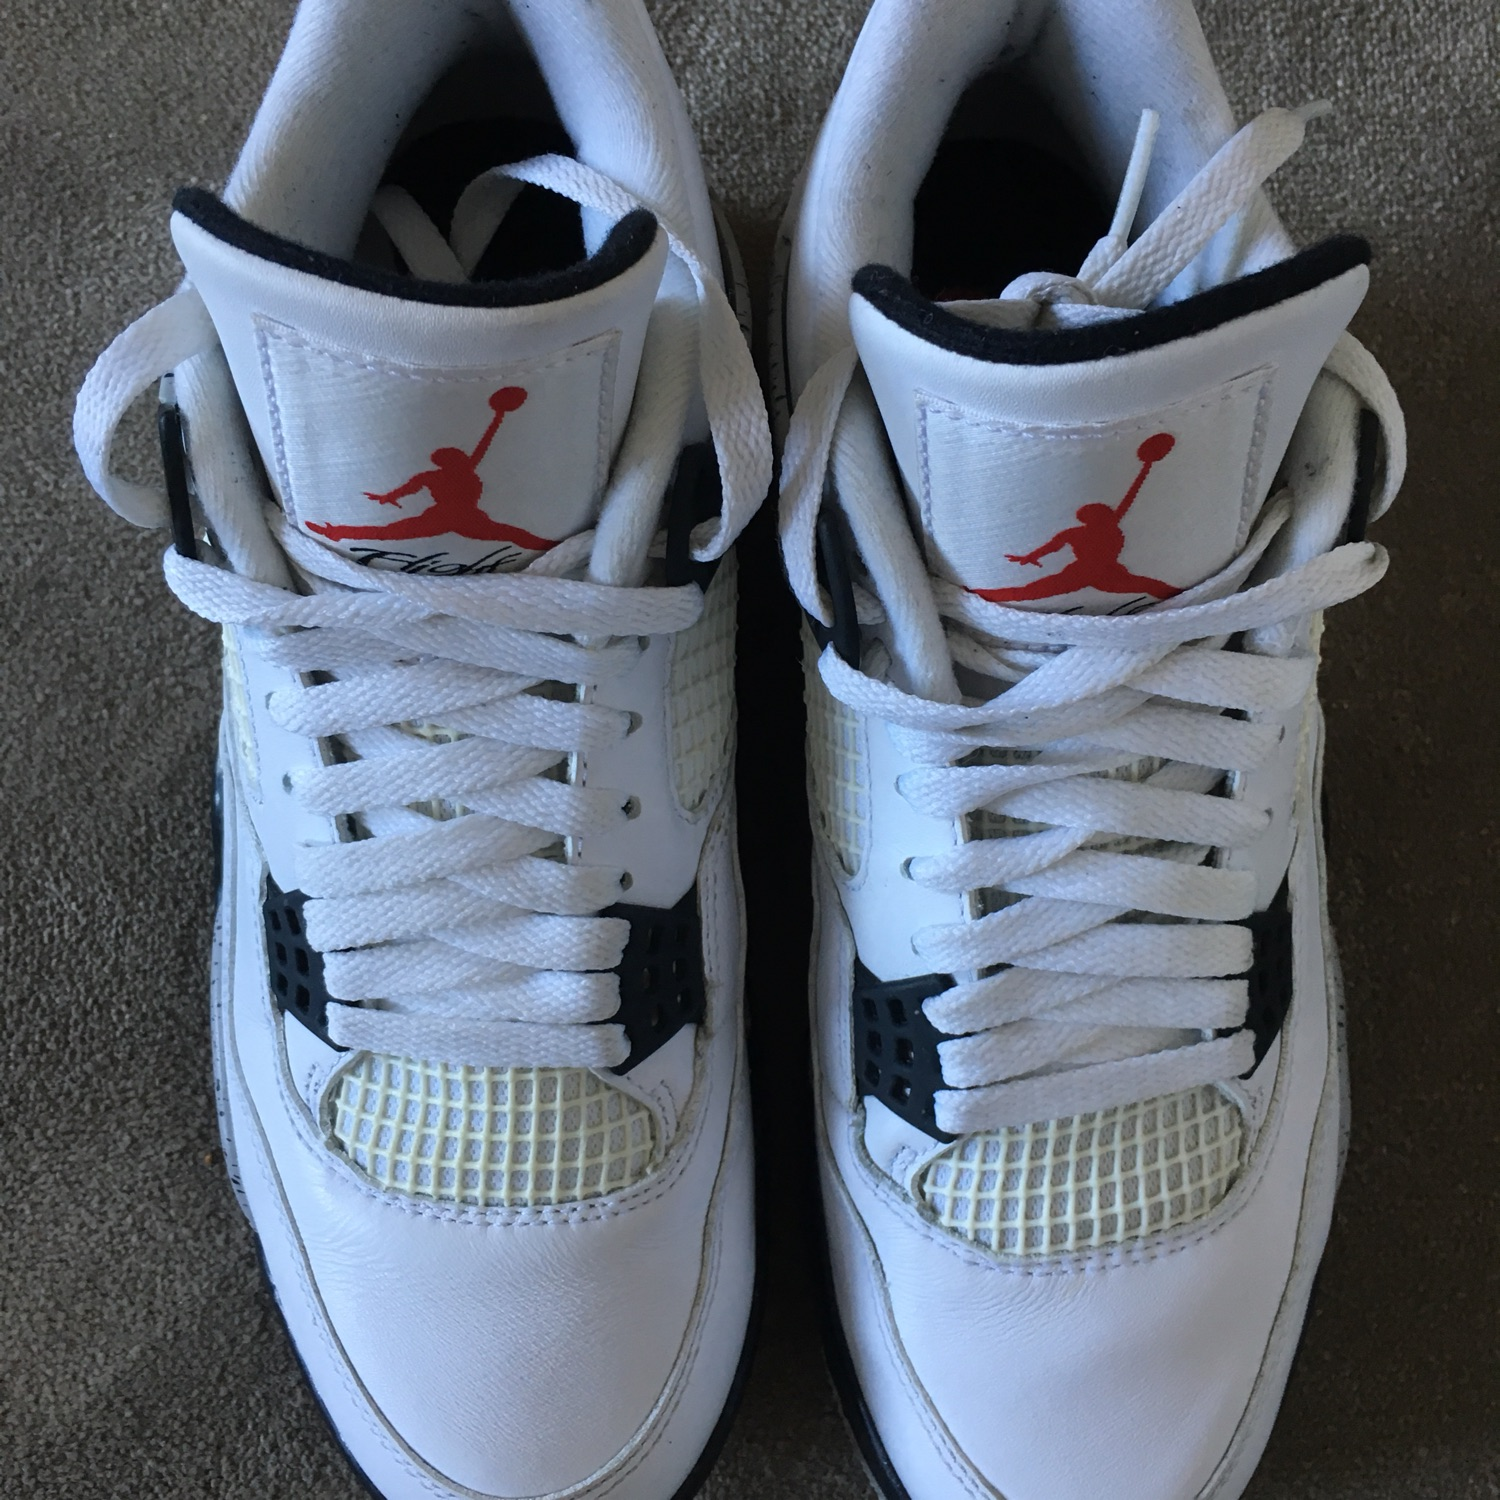 the best attitude b6b83 95aa9 White Cement Jordan 4S 2016 Great Price!!